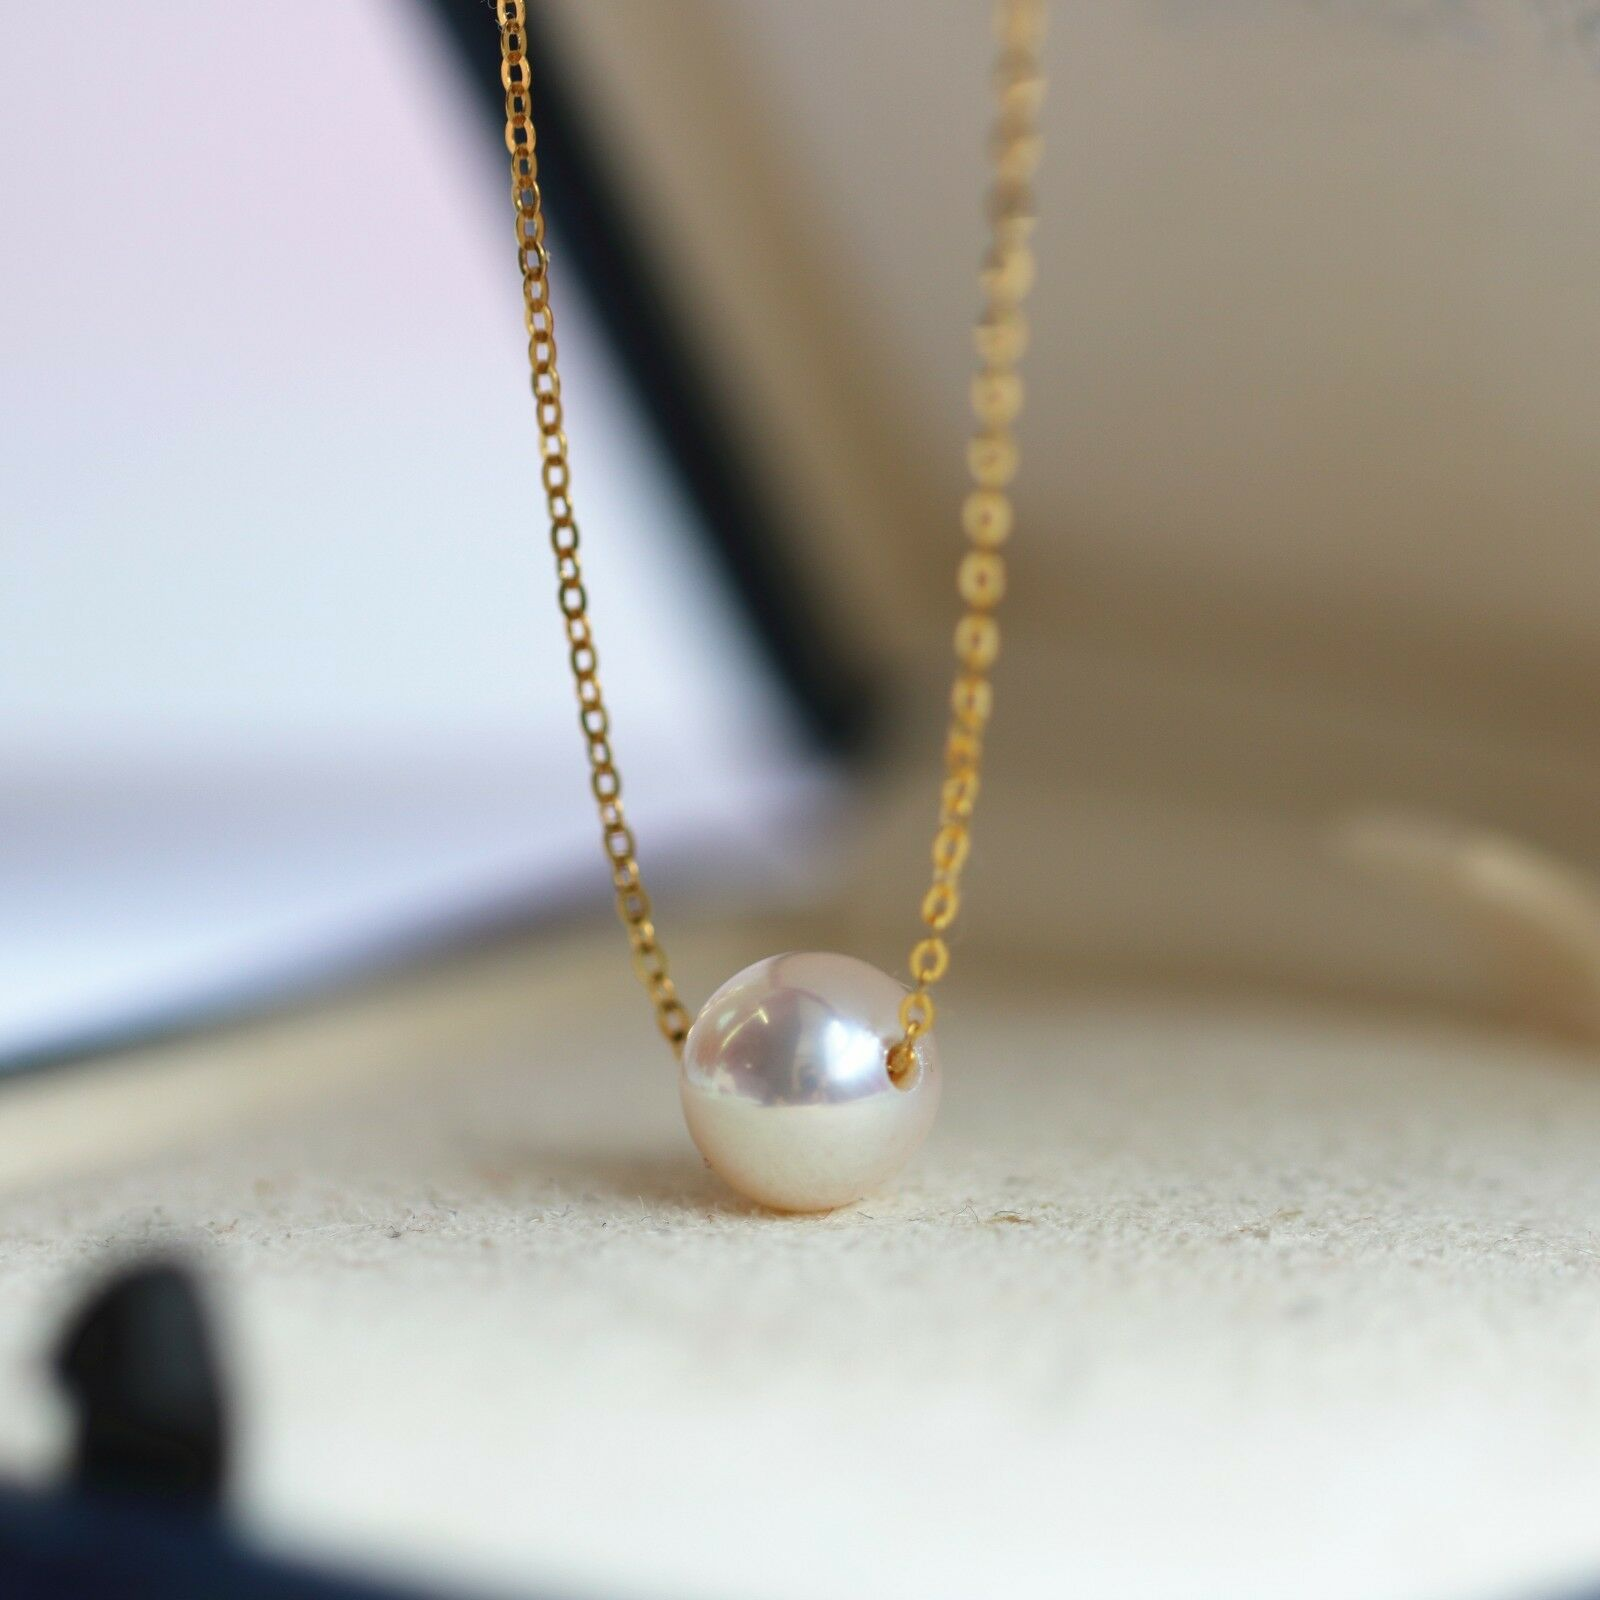 elegant 7-7.5mm Japan Akoya white round pearl necklace 18inch 18k solid gold